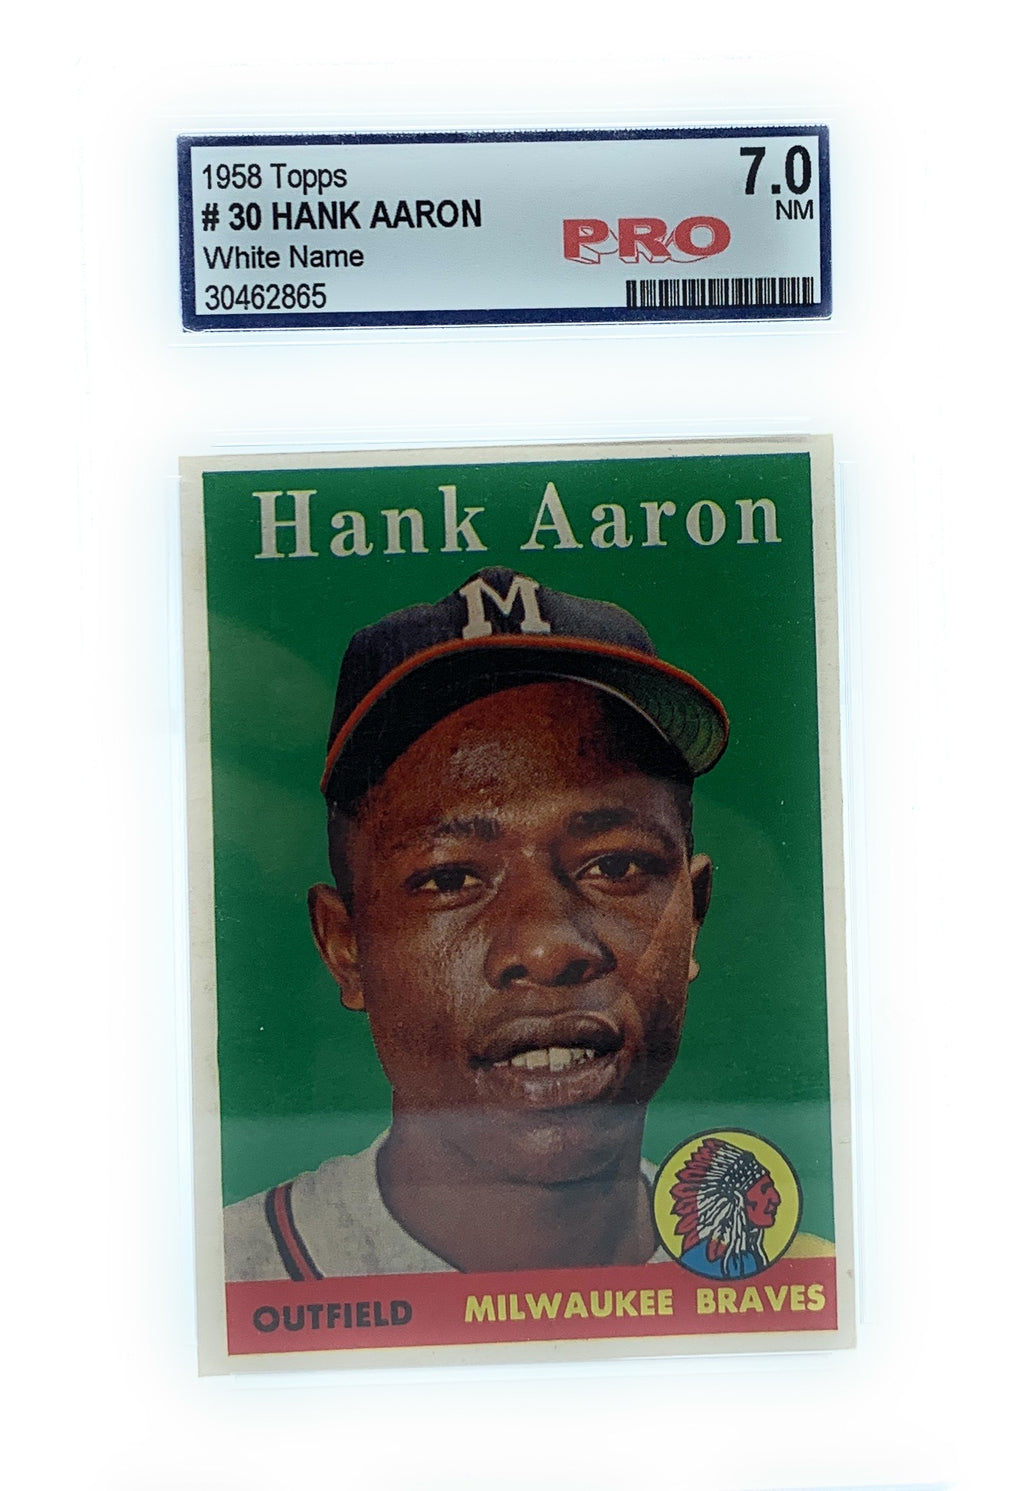 1958 Topps #30 Hank Aaron Card Graded PSA 7 - Near Mint